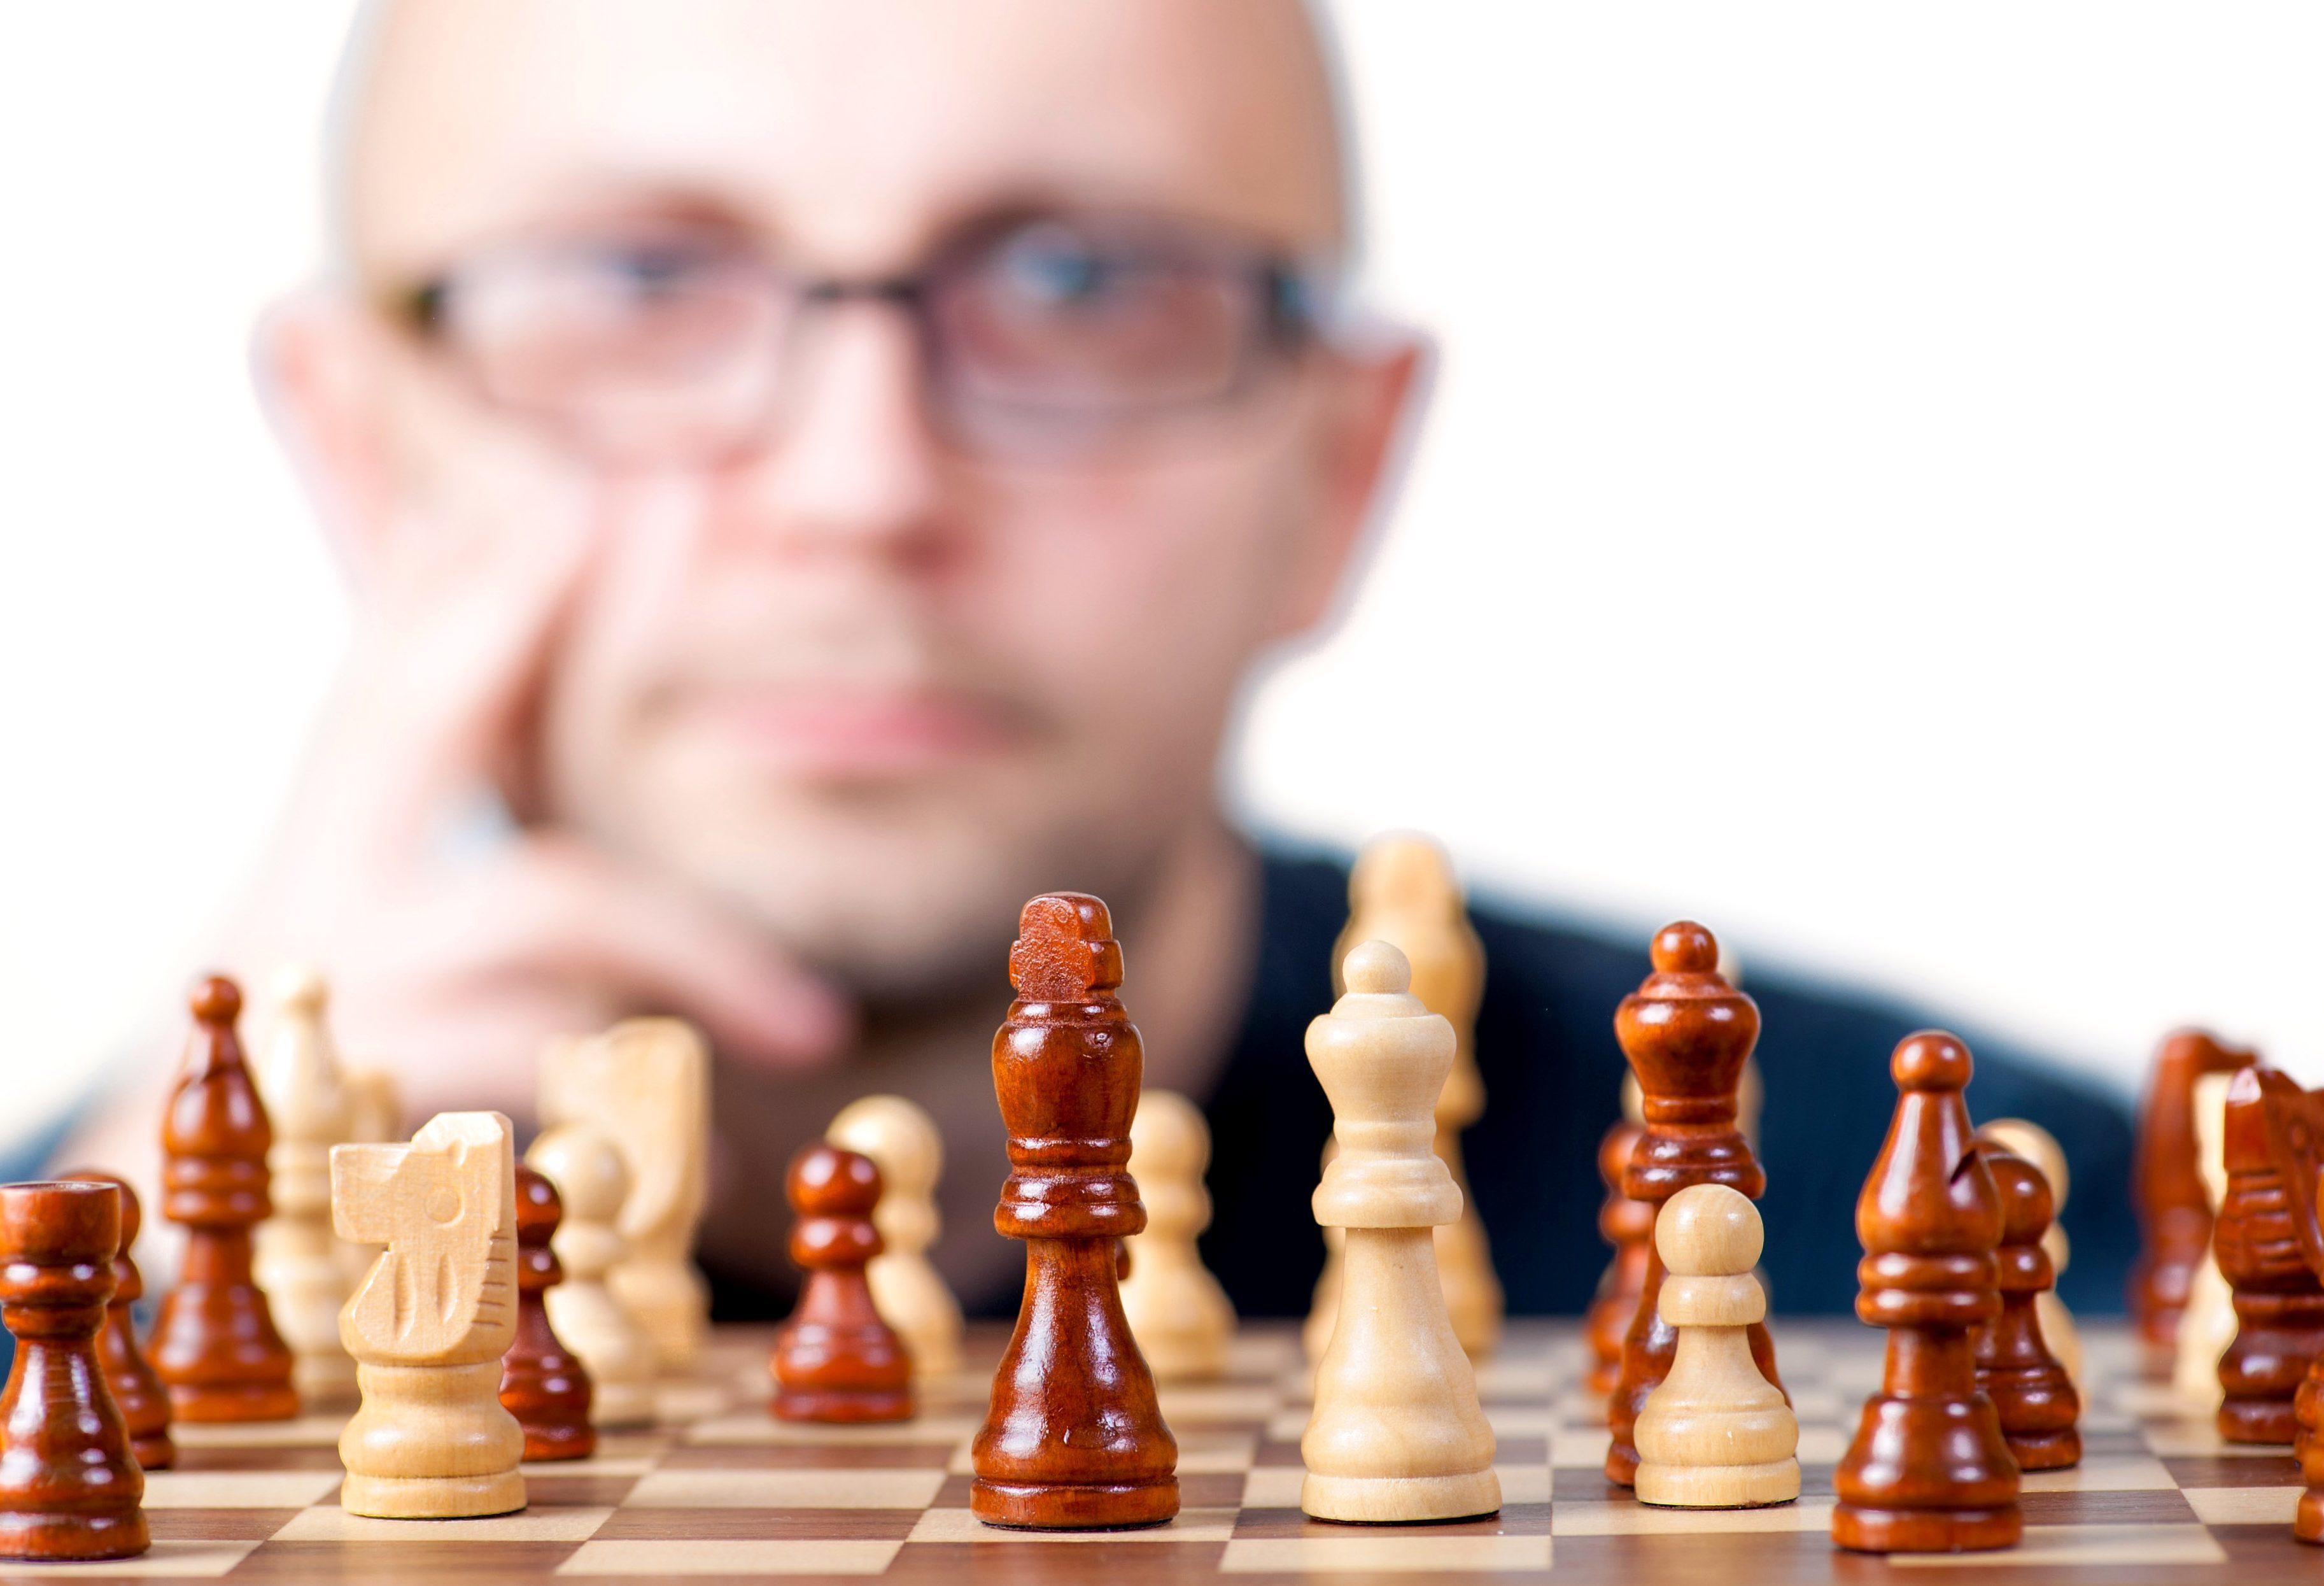 Free picture: man playing chess, game